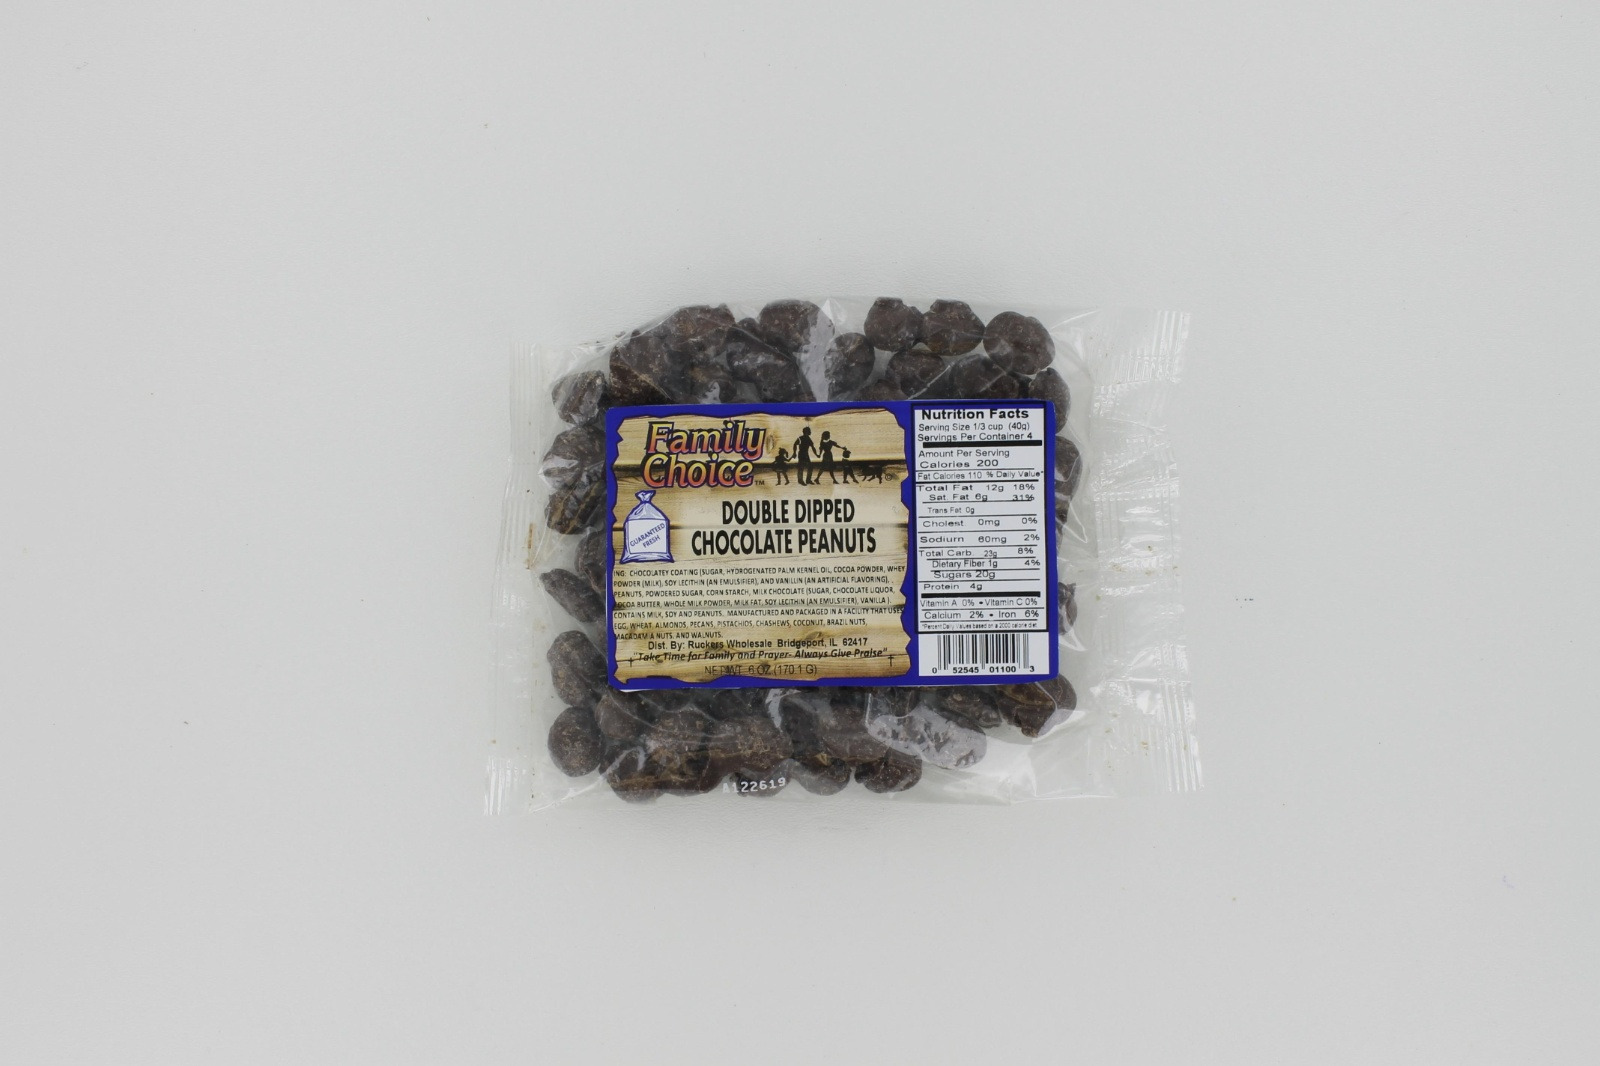 Double-Dipped Chocolate Peanuts 6 oz